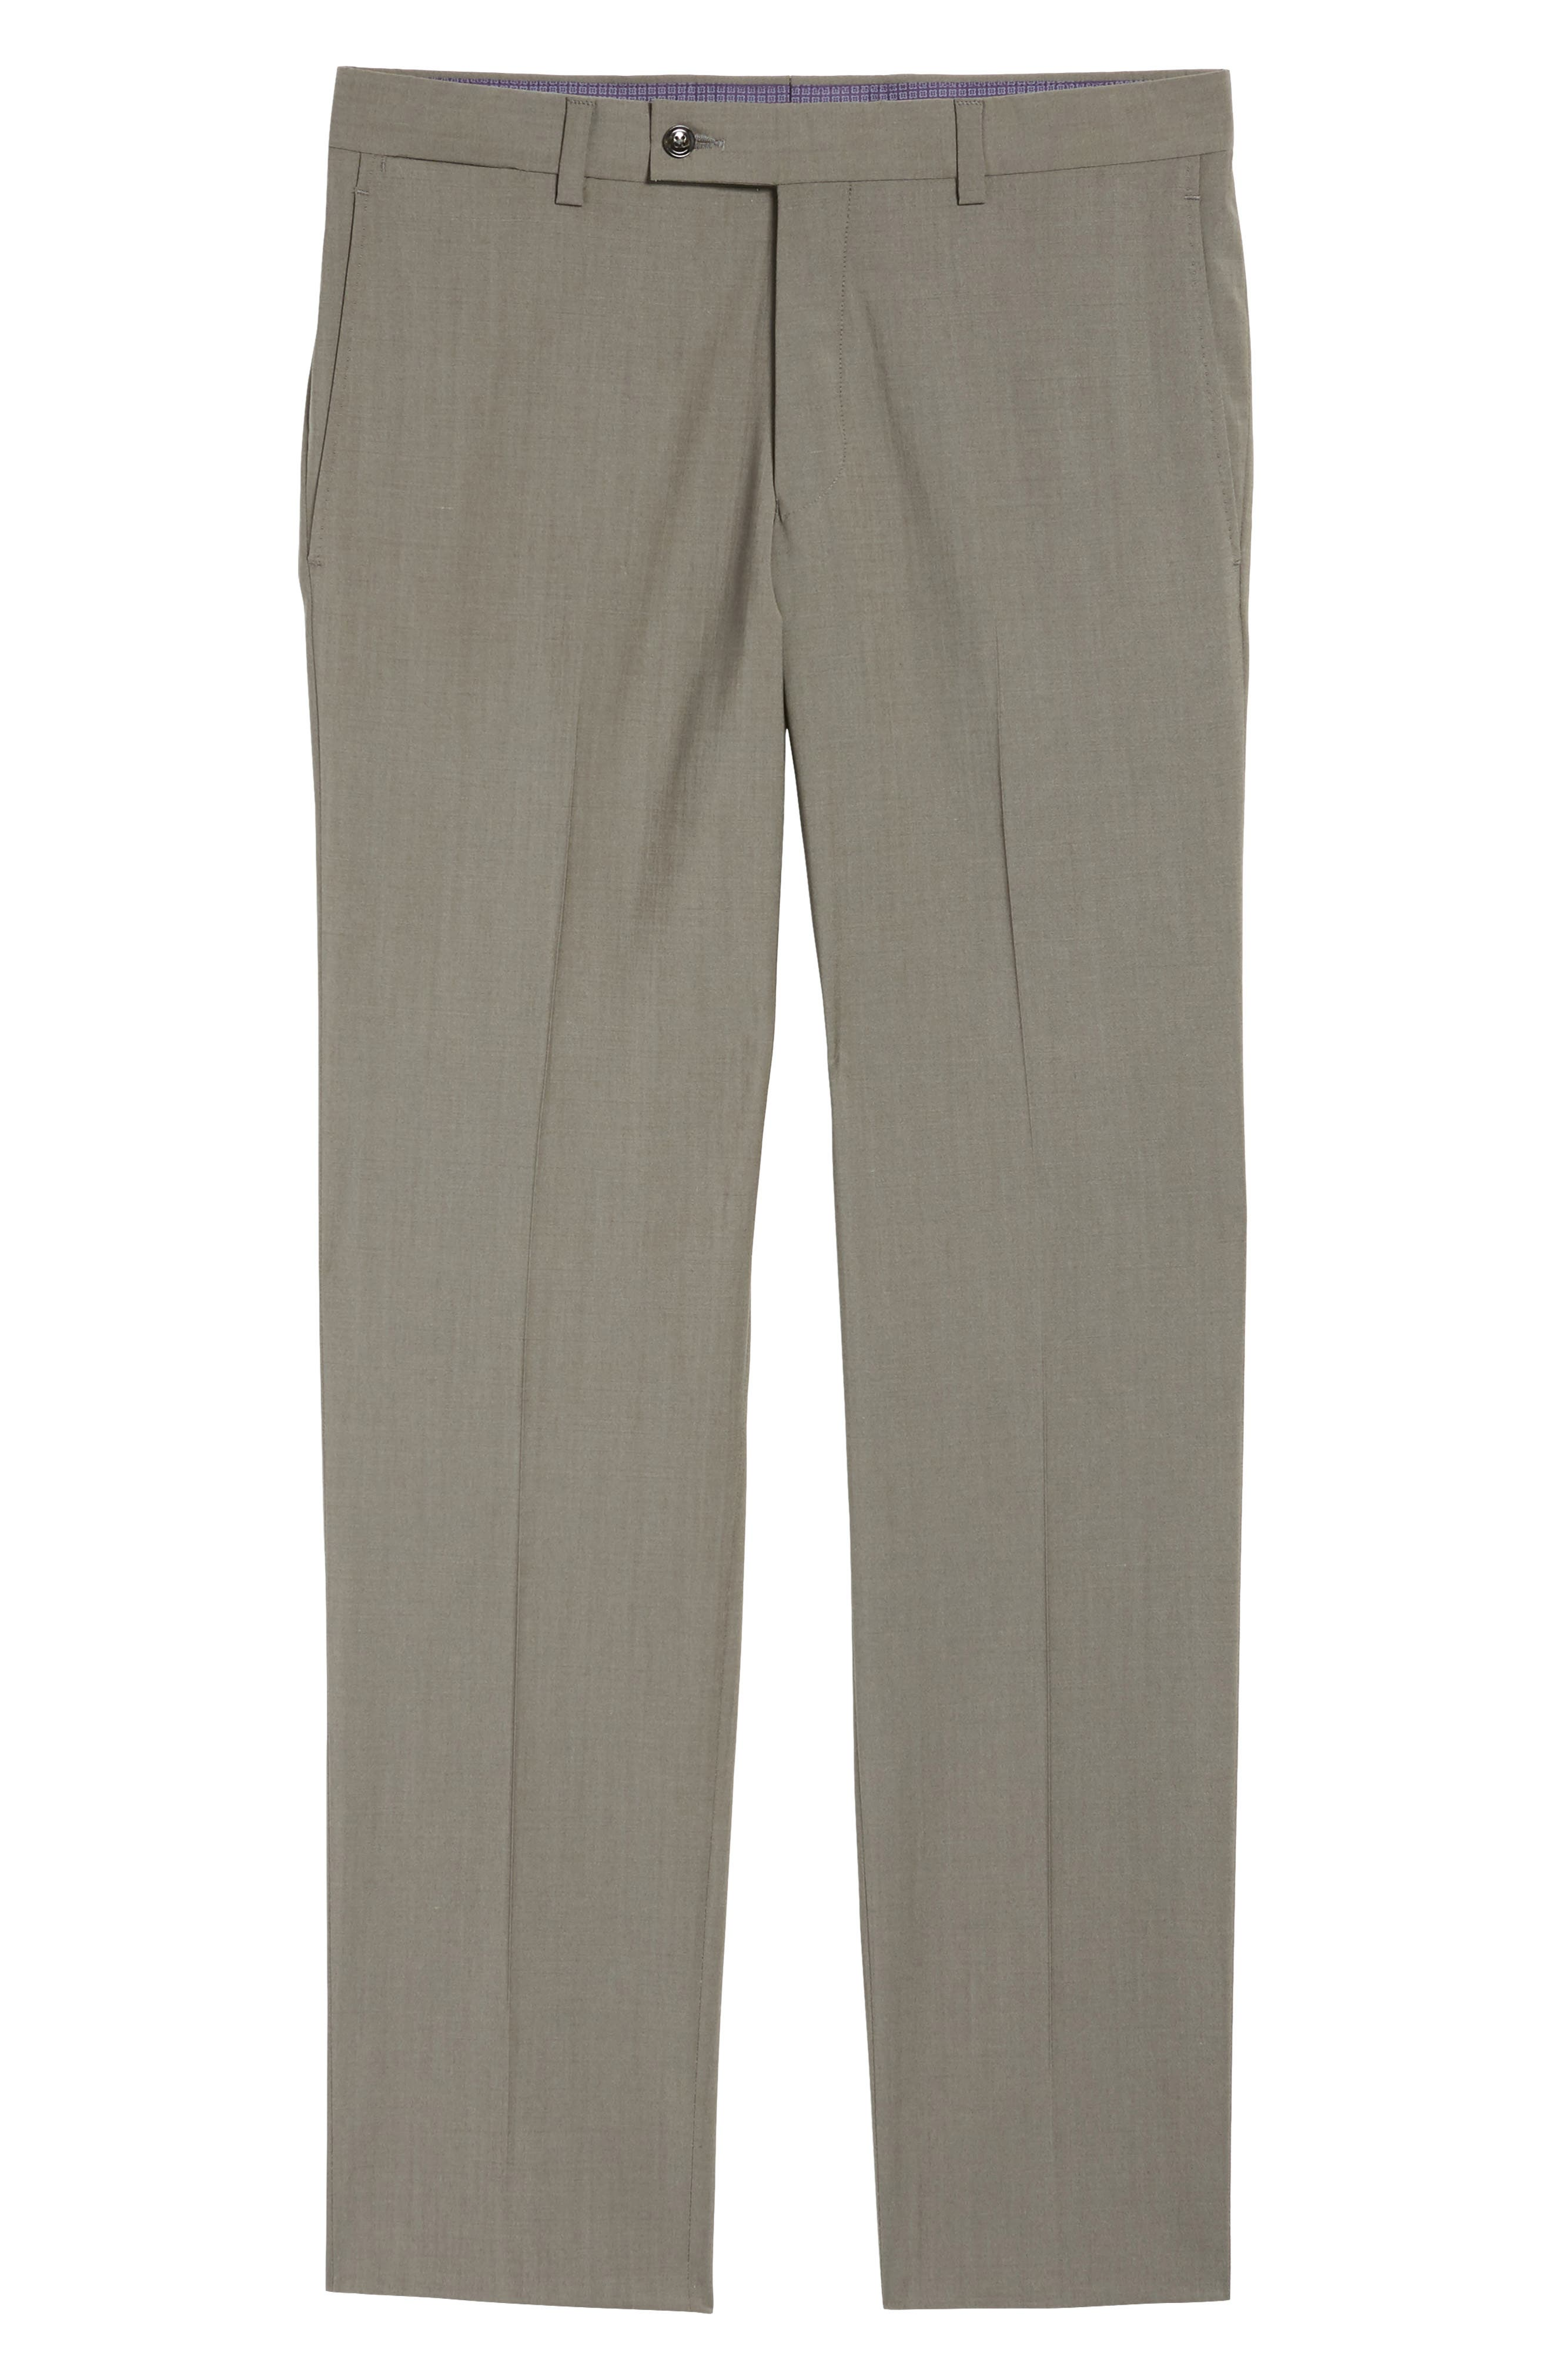 Jefferson Flat Front Stretch Wool Trousers,                             Alternate thumbnail 6, color,                             Grey